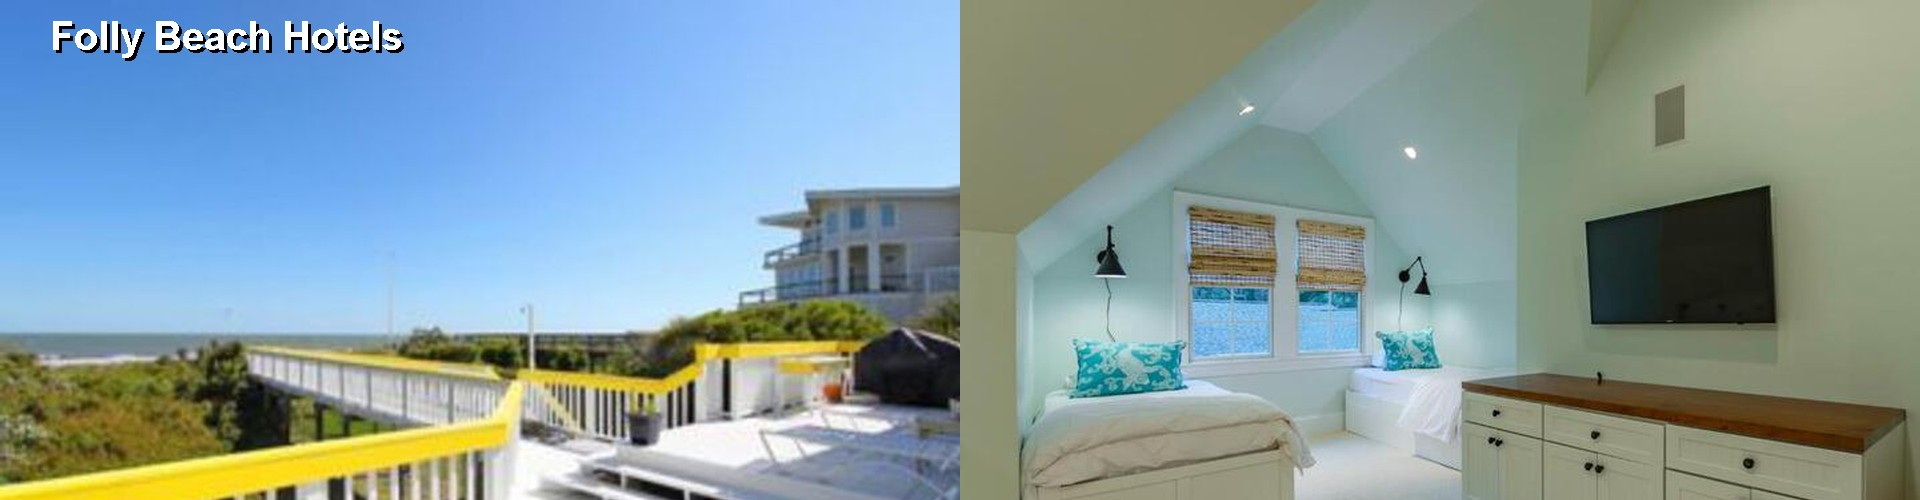 $52+ Hotels Near Folly Beach in Johns Island SC